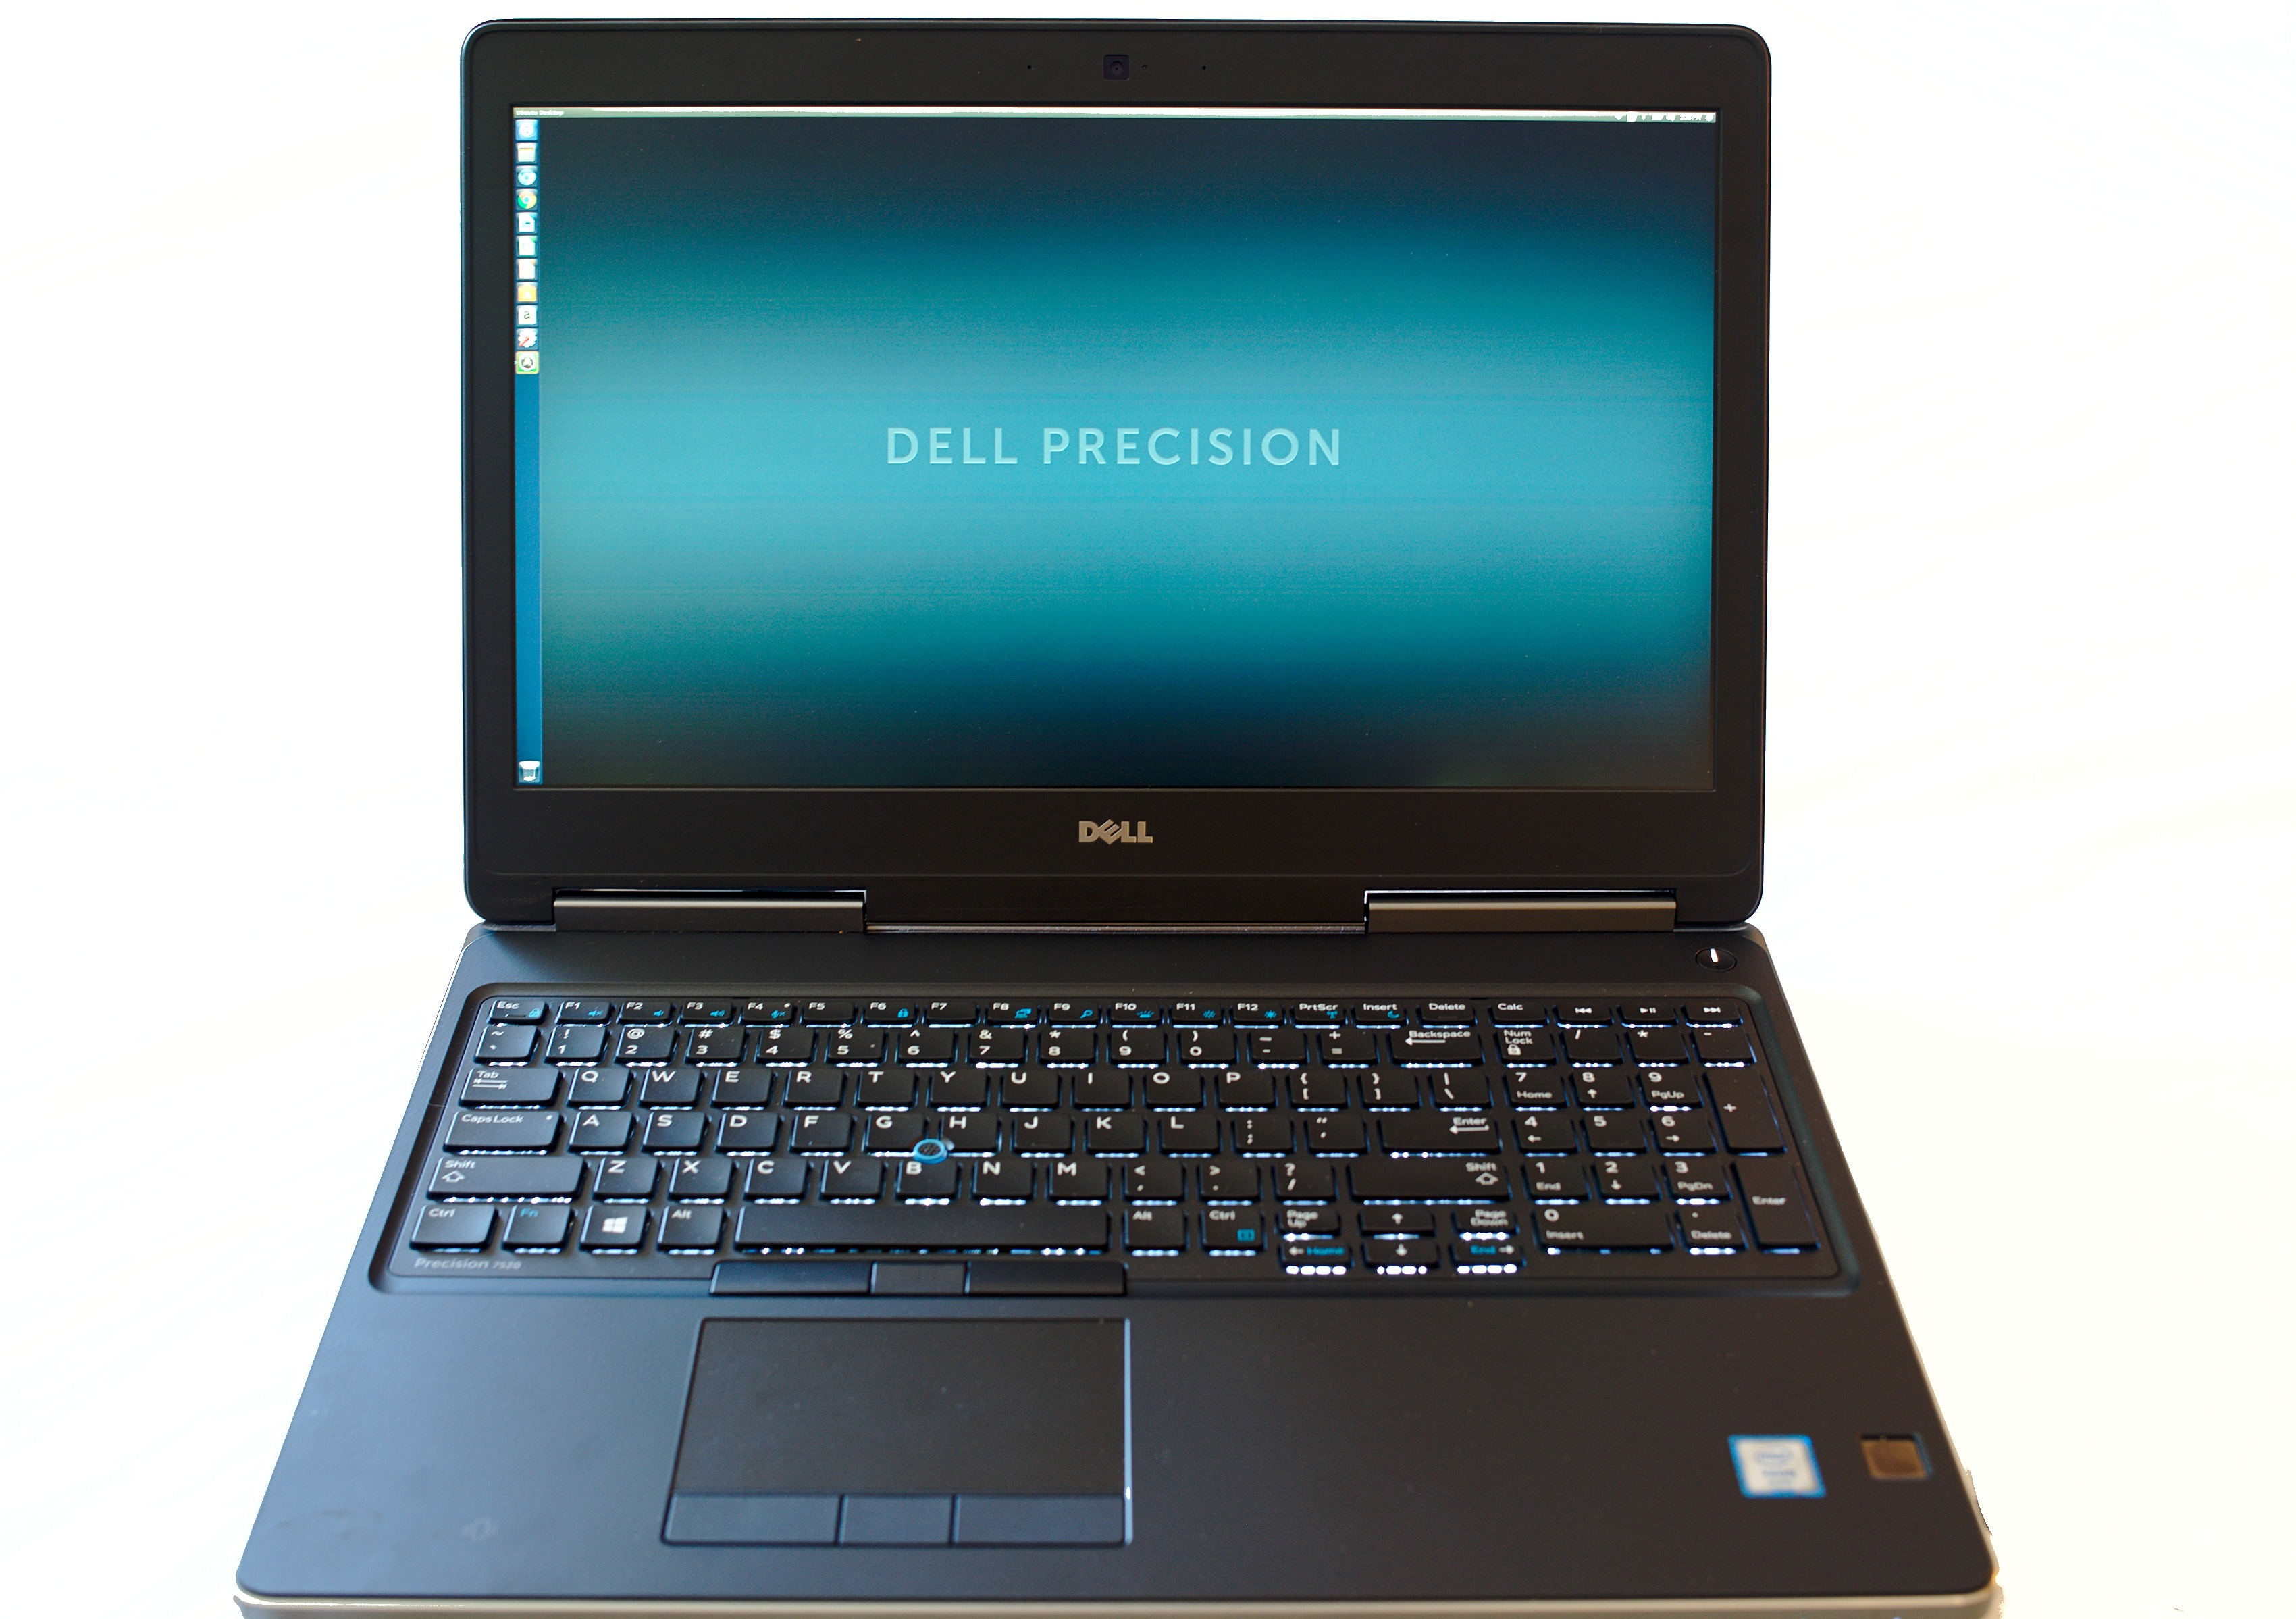 The beefy Dell Precision 7520 DE can out-muscle a growing